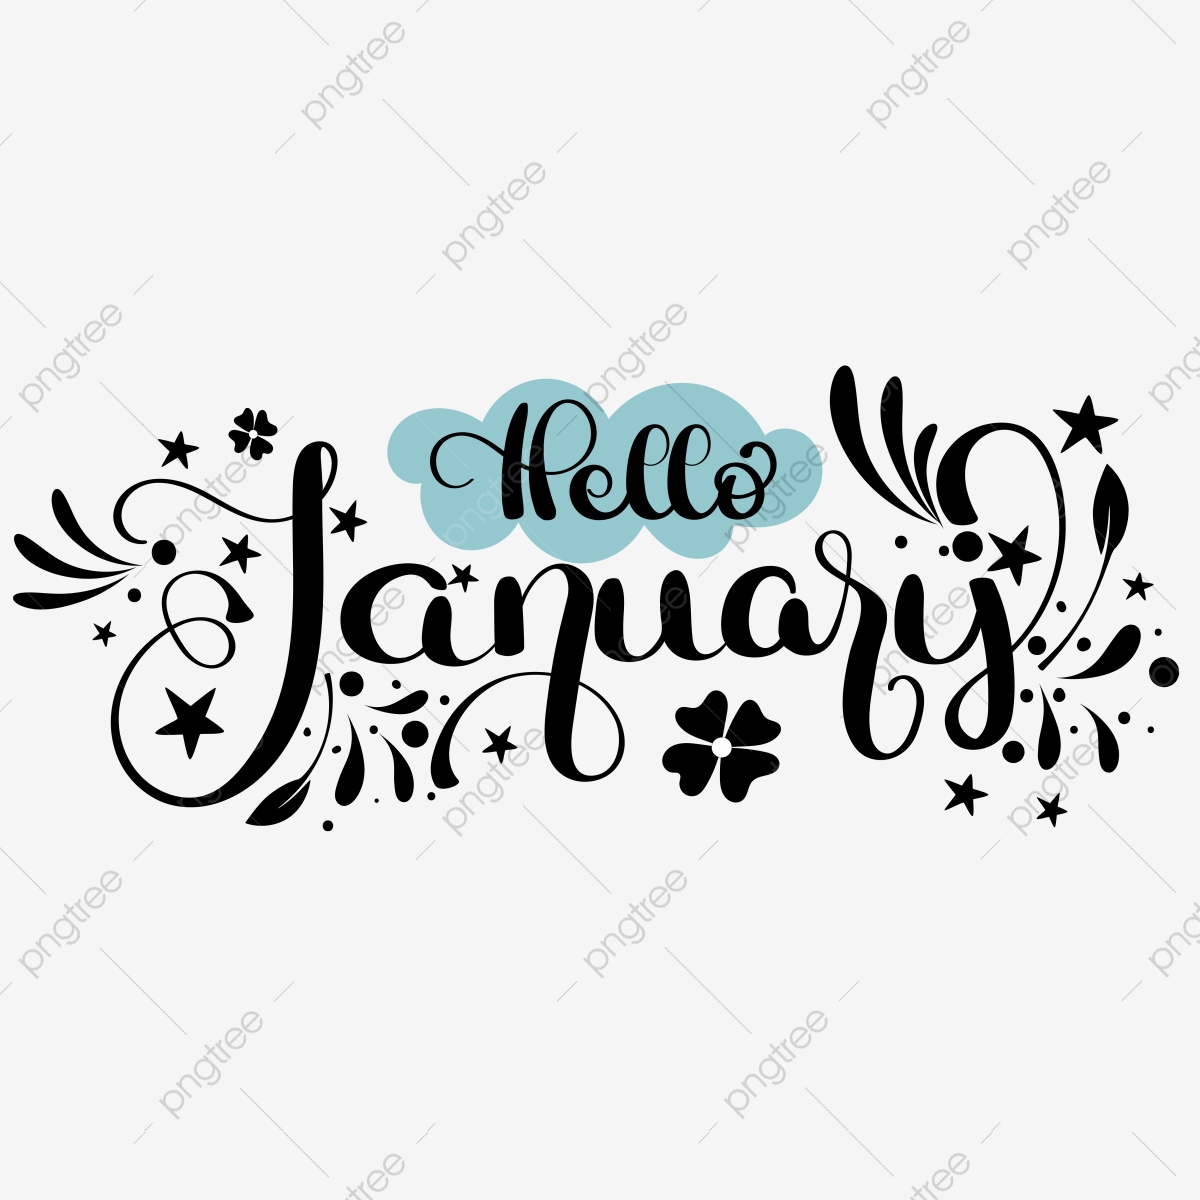 January Png Images Vector And Psd Files Free Download On Pngtree Check out our hand lettering png selection for the very best in unique or custom, handmade pieces from our art & collectibles shops. https pngtree com freepng hello january month text hand lettering with ornaments 5719829 html